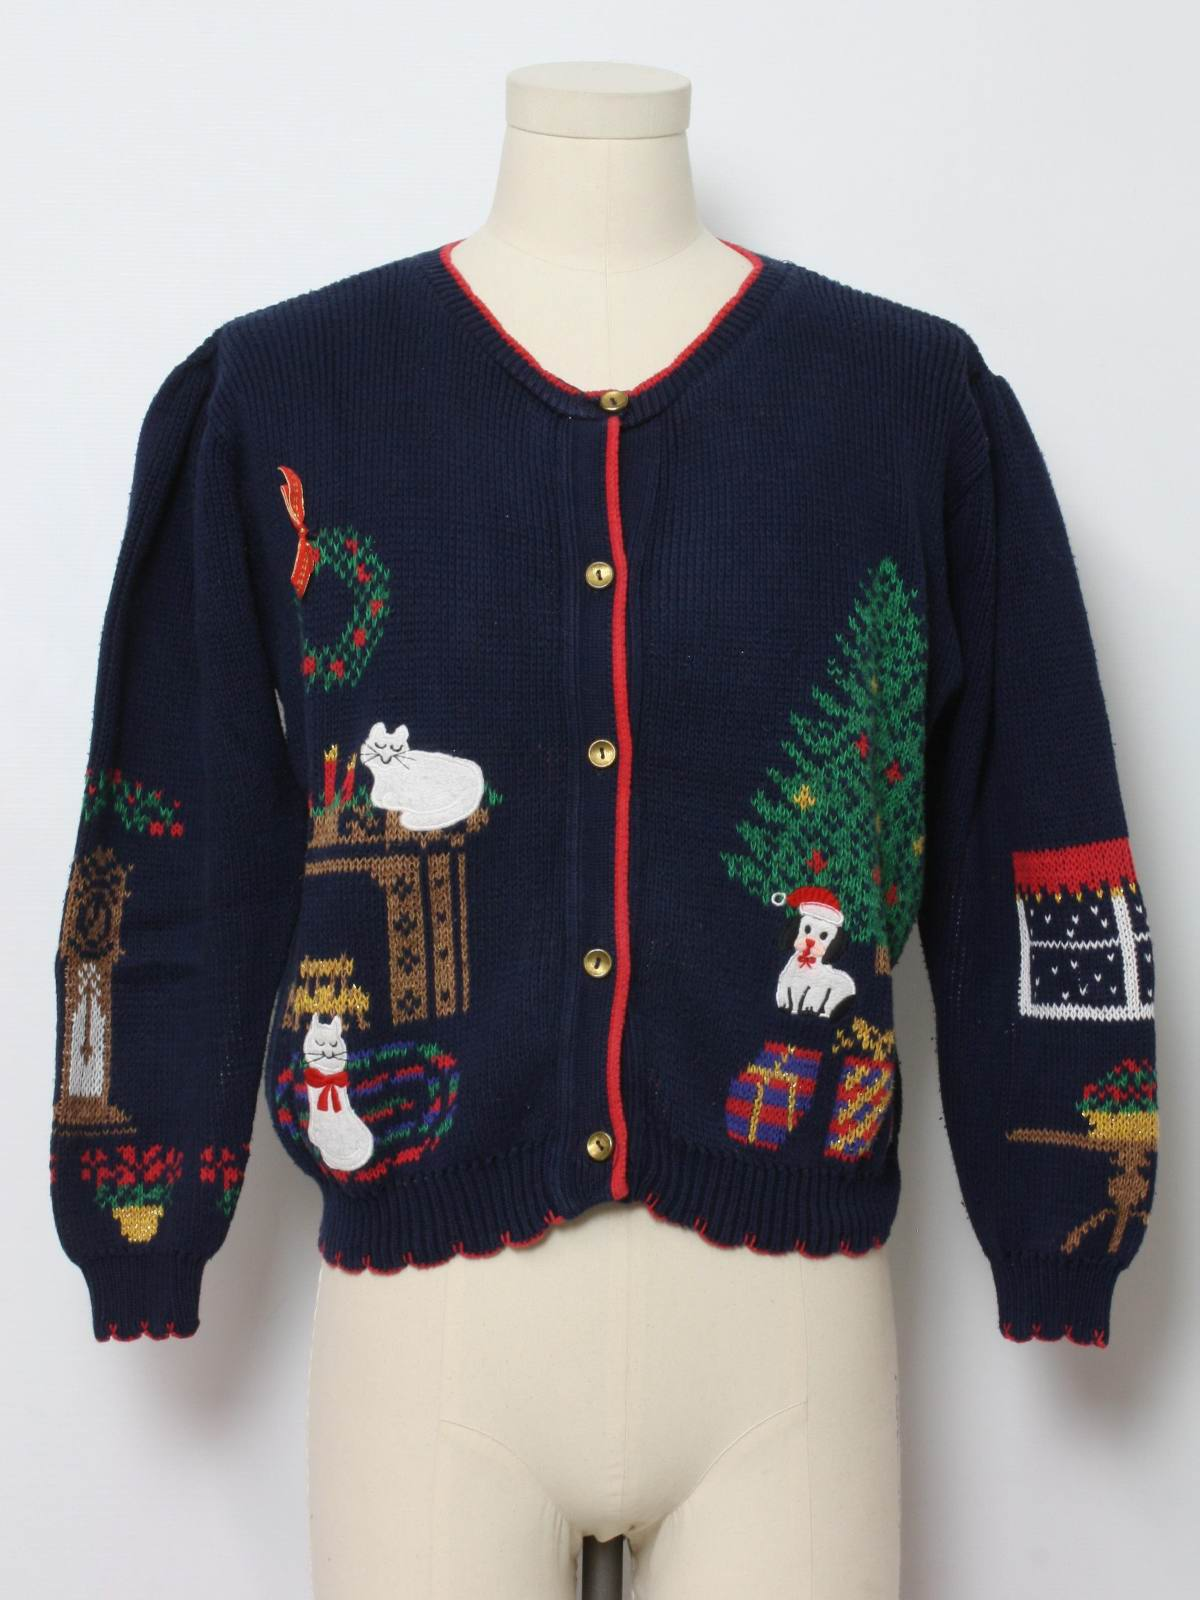 1980s Womens Cat Tastic Vintage Ugly Christmas Sweater 80s Authentic Vintage Made By Sweater